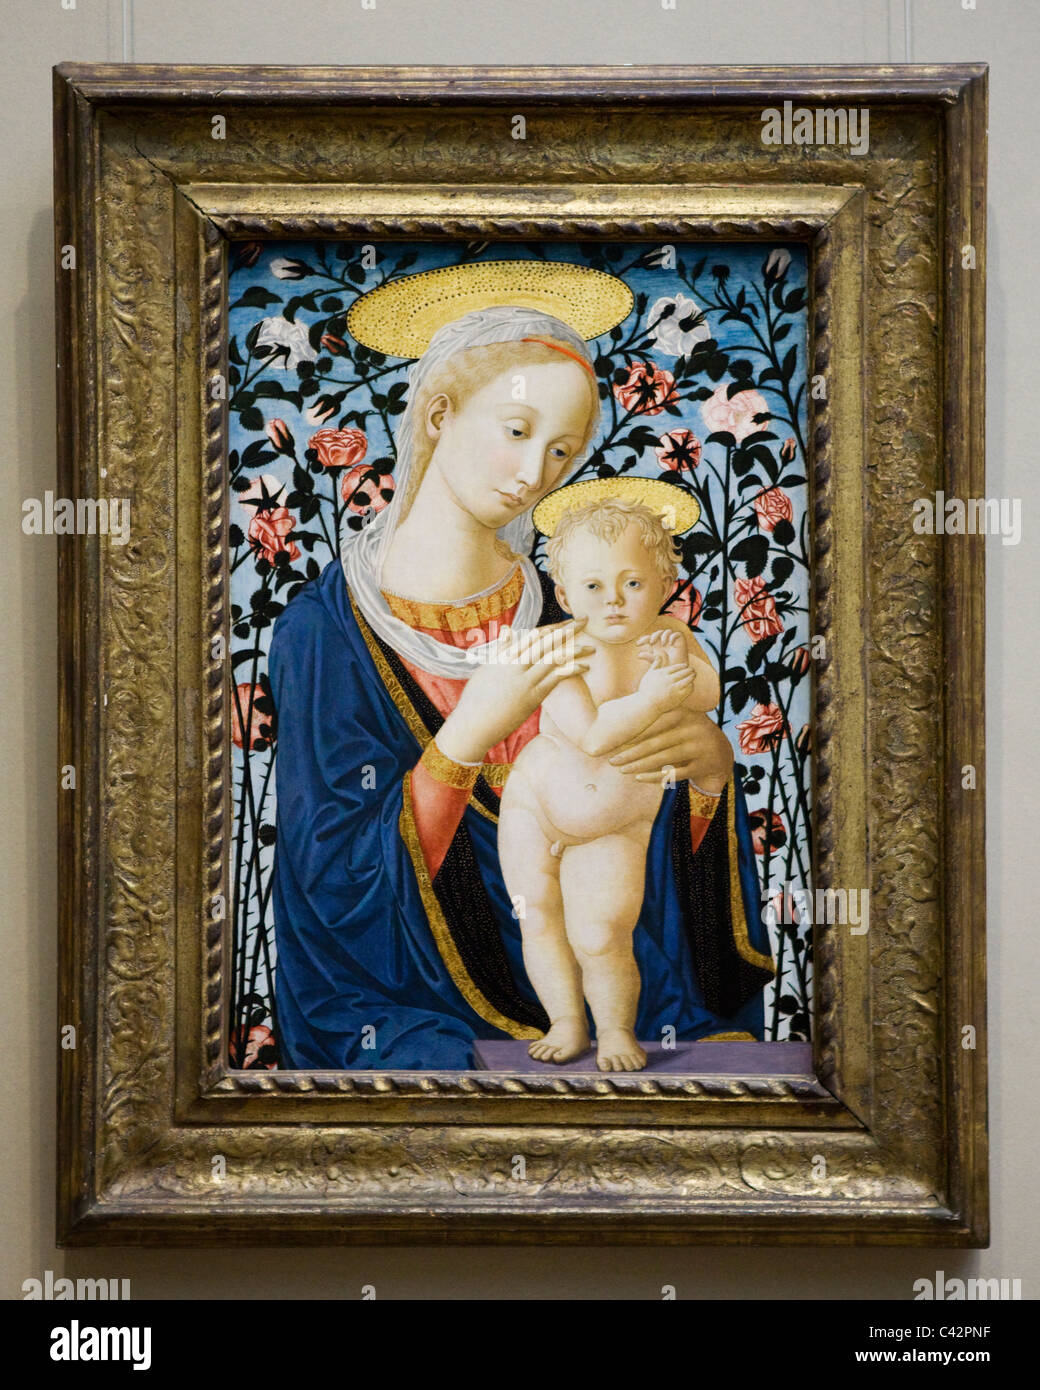 'Madonna and Child' by Follower of Fra Filippo Lippi and Pesellino, 1470 - Stock Image